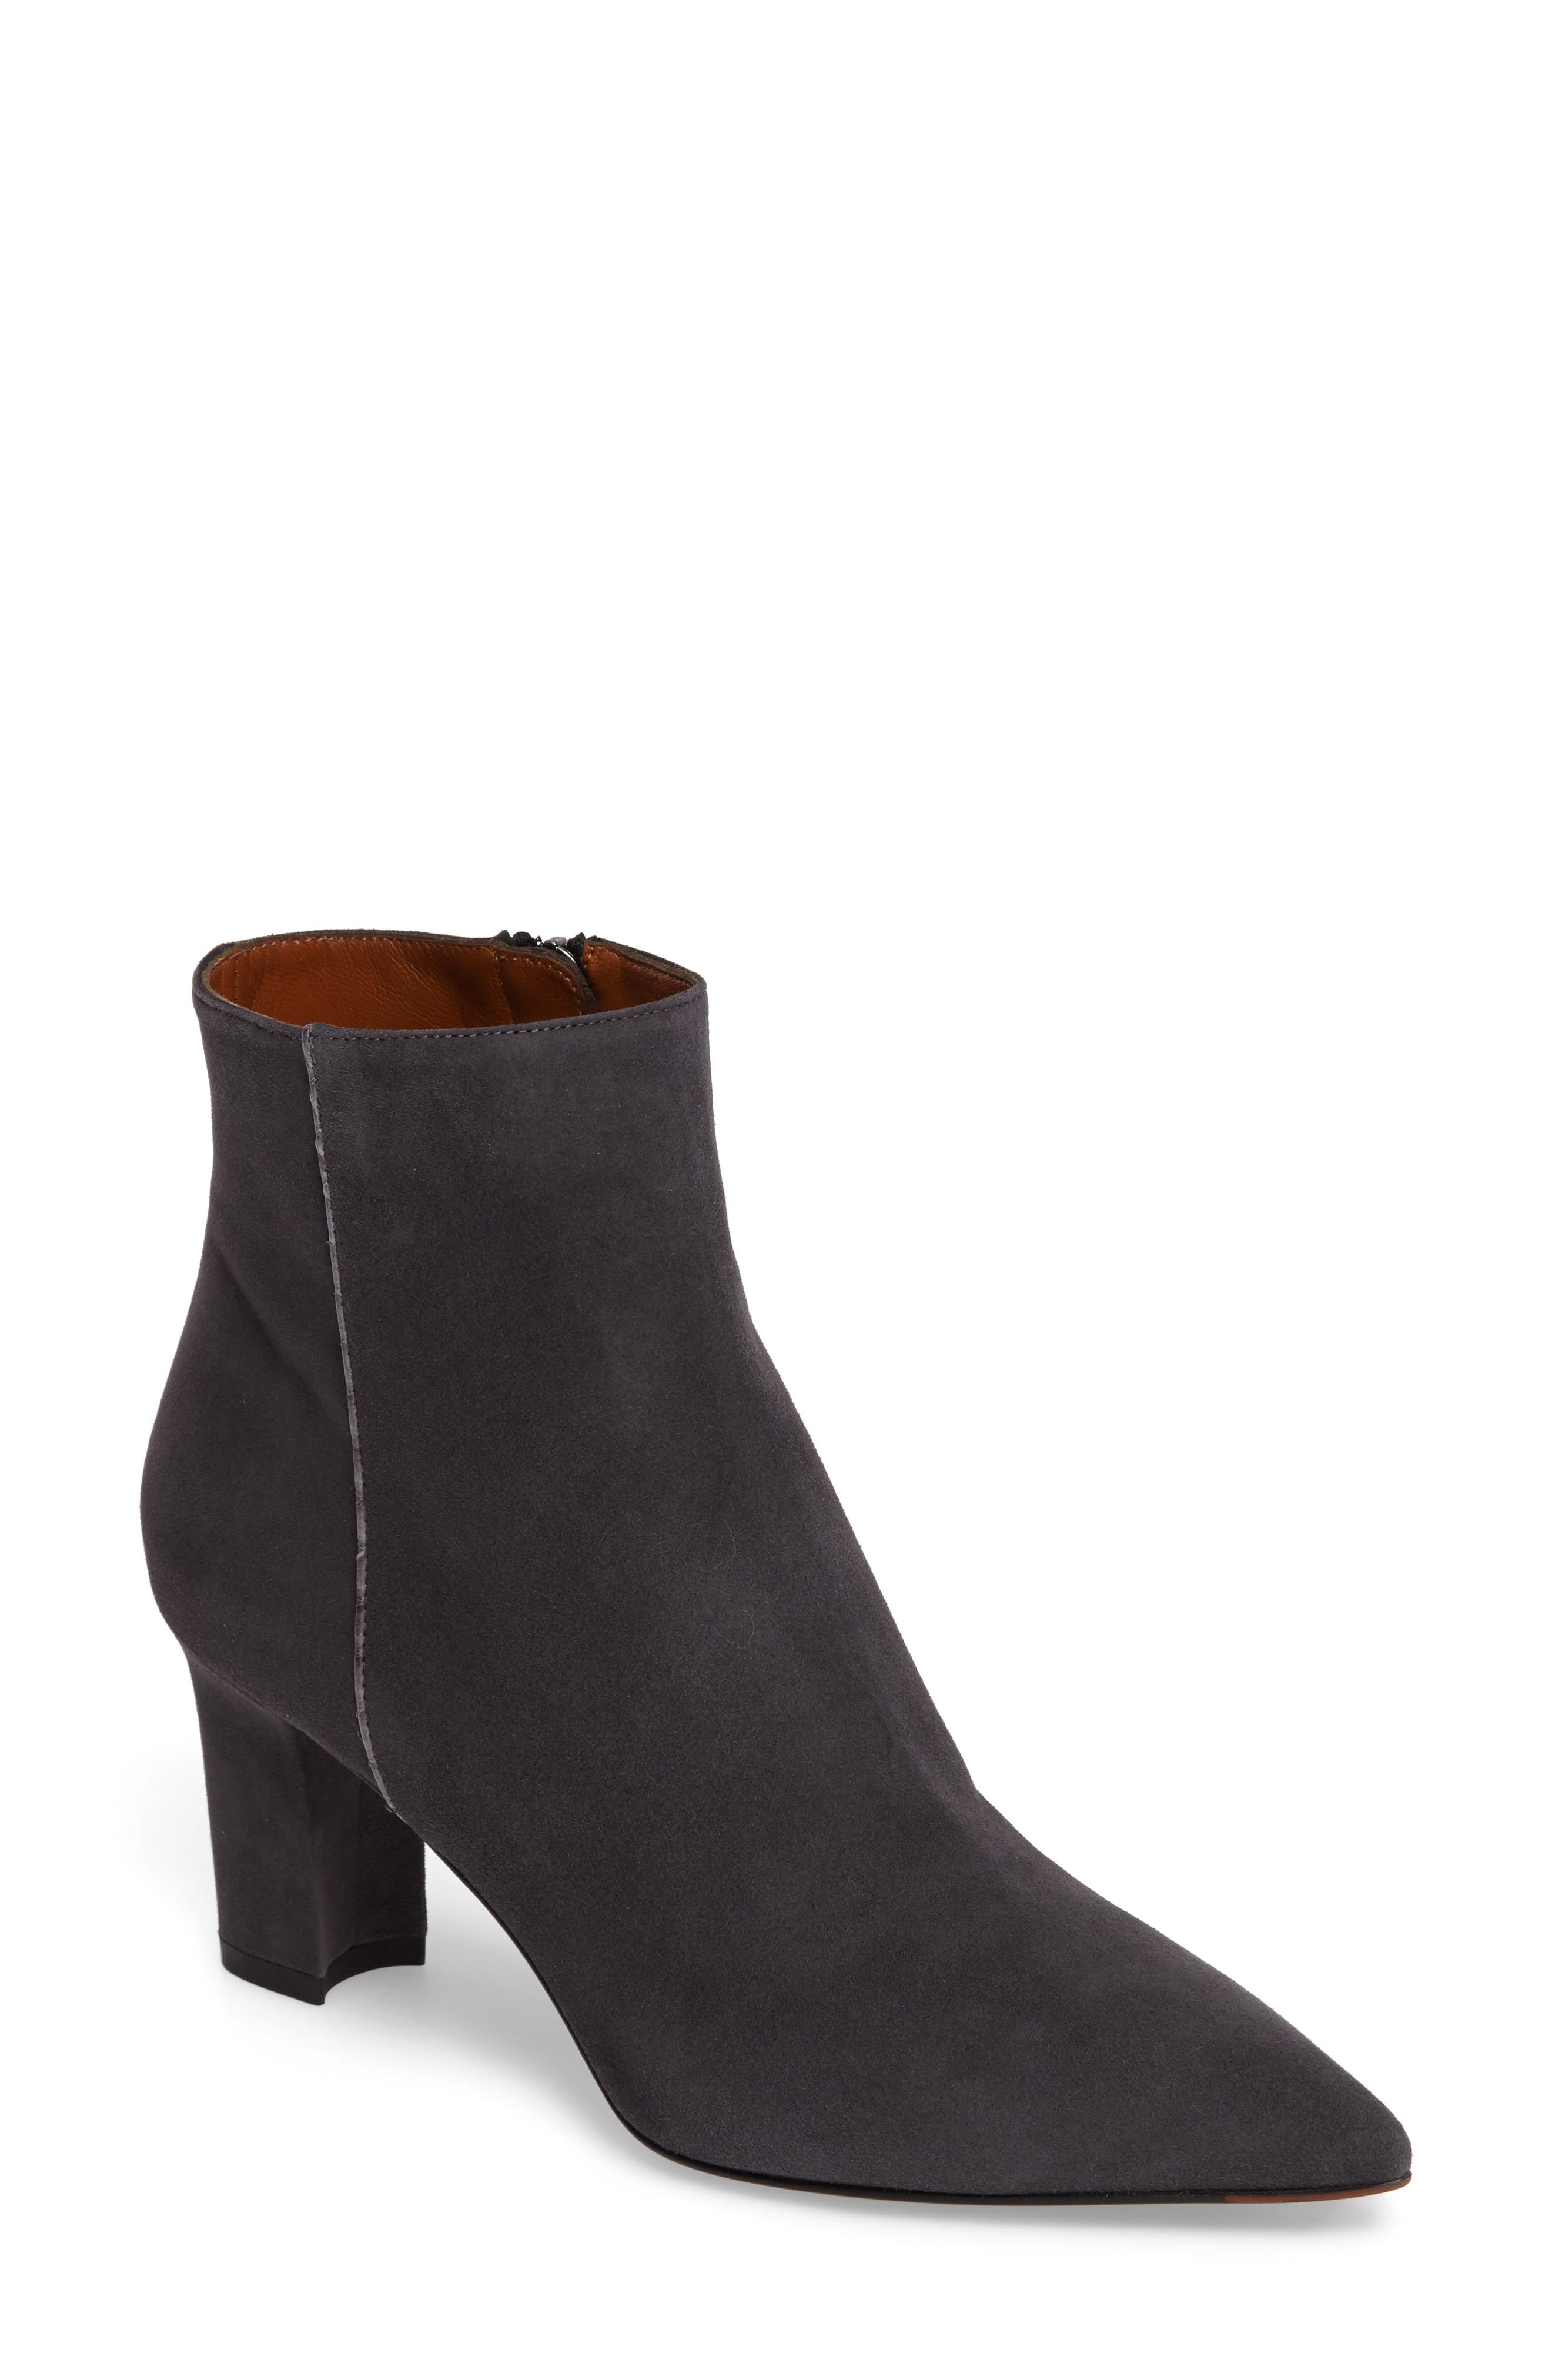 Maia Weatherproof Pointed Toe Bootie,                             Main thumbnail 1, color,                             Anthracite Suede